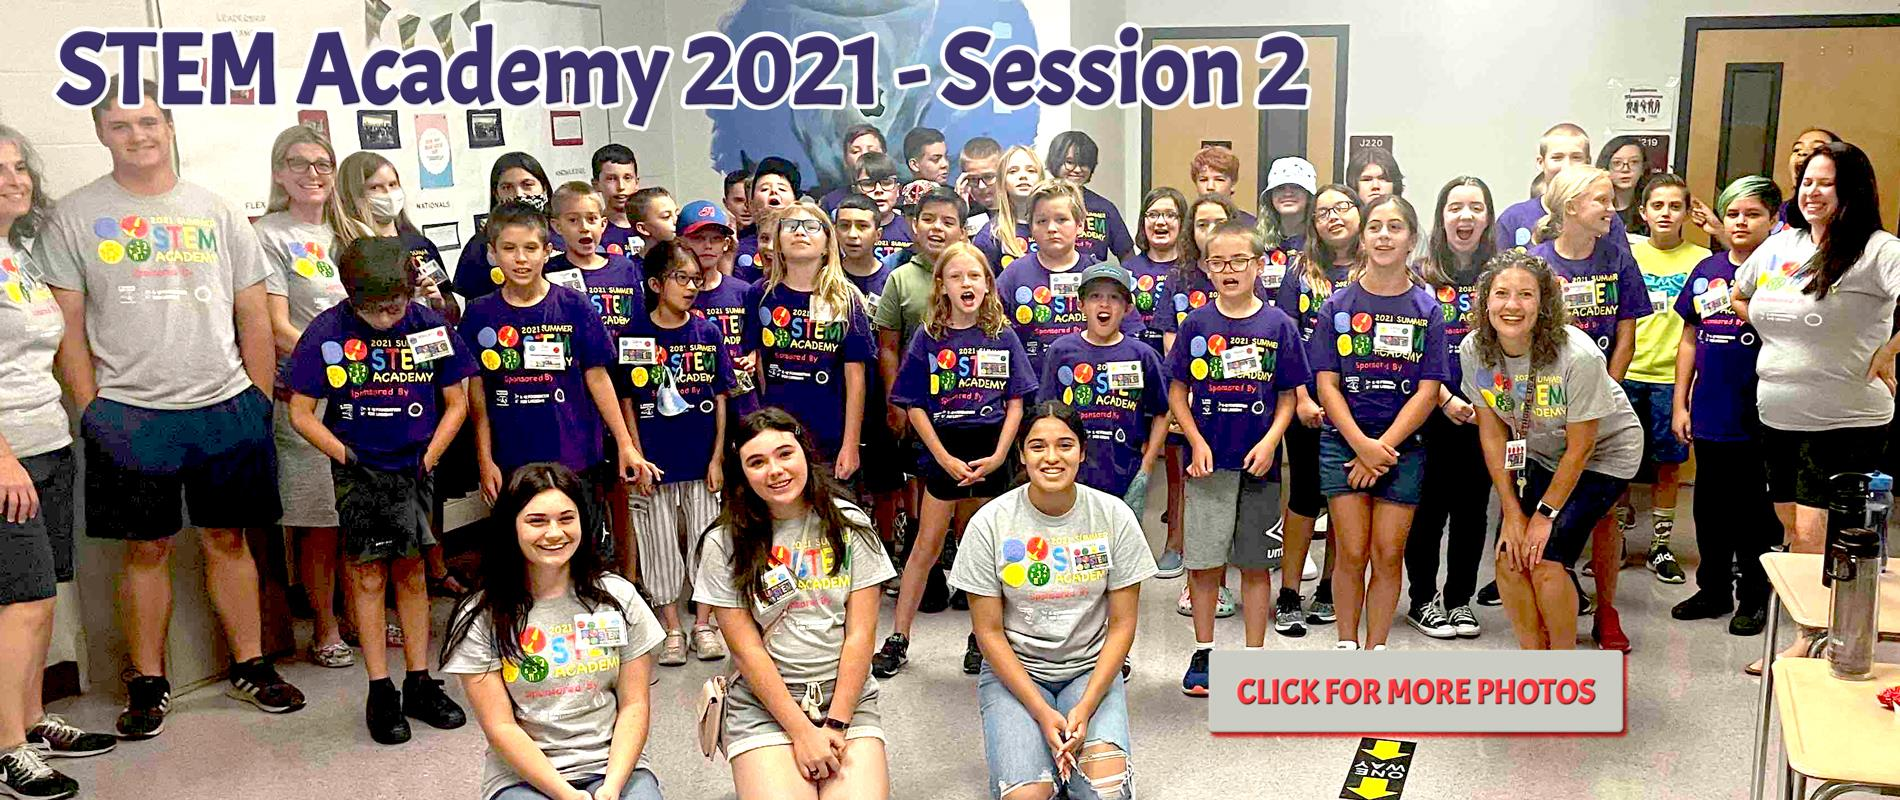 STEM Academy 2021 Participants and Staff